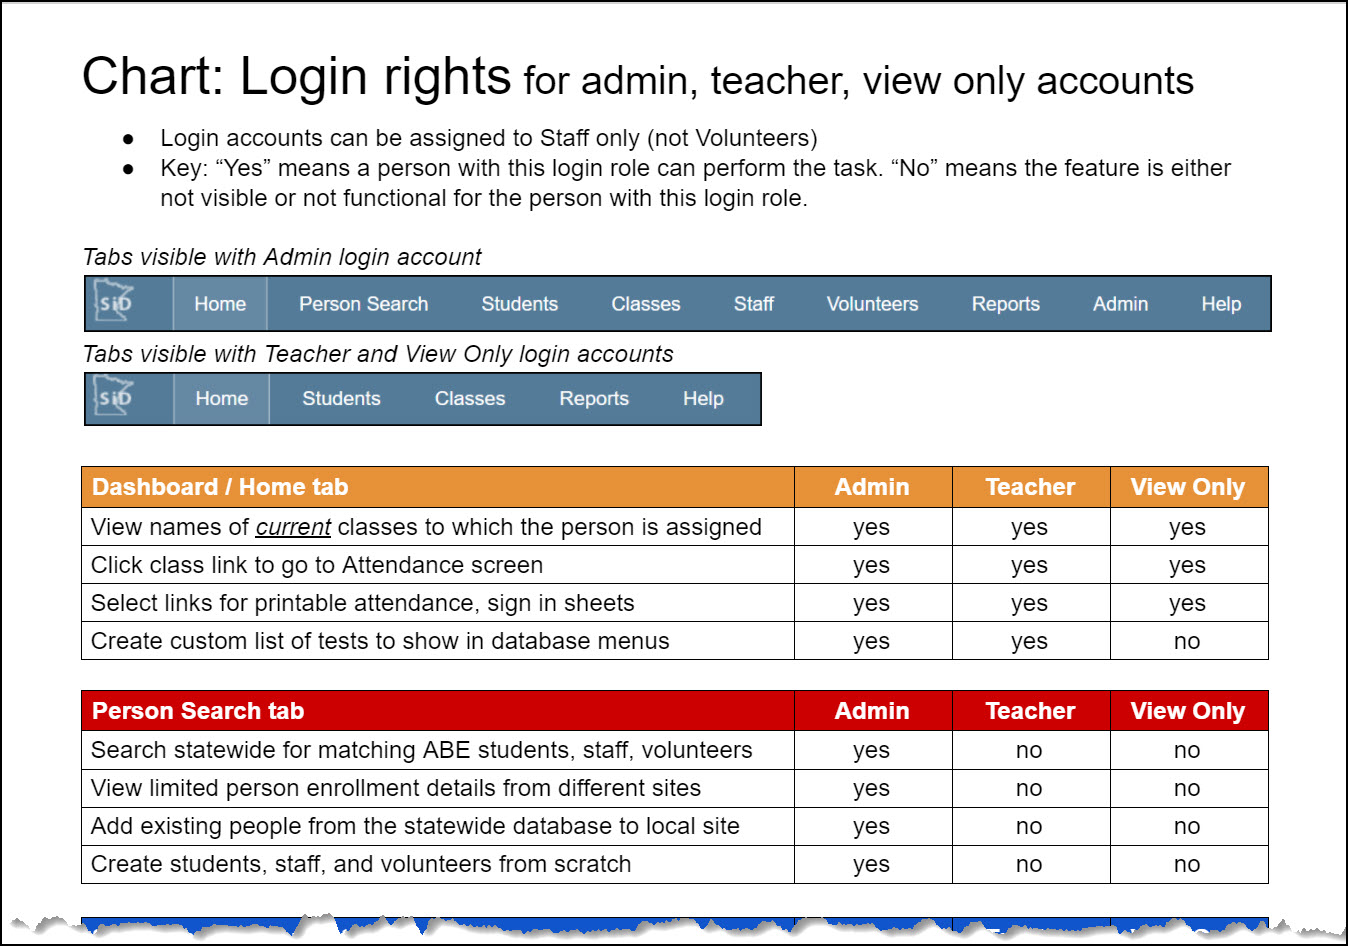 Chart_login_rights_for_all_accts.jpg